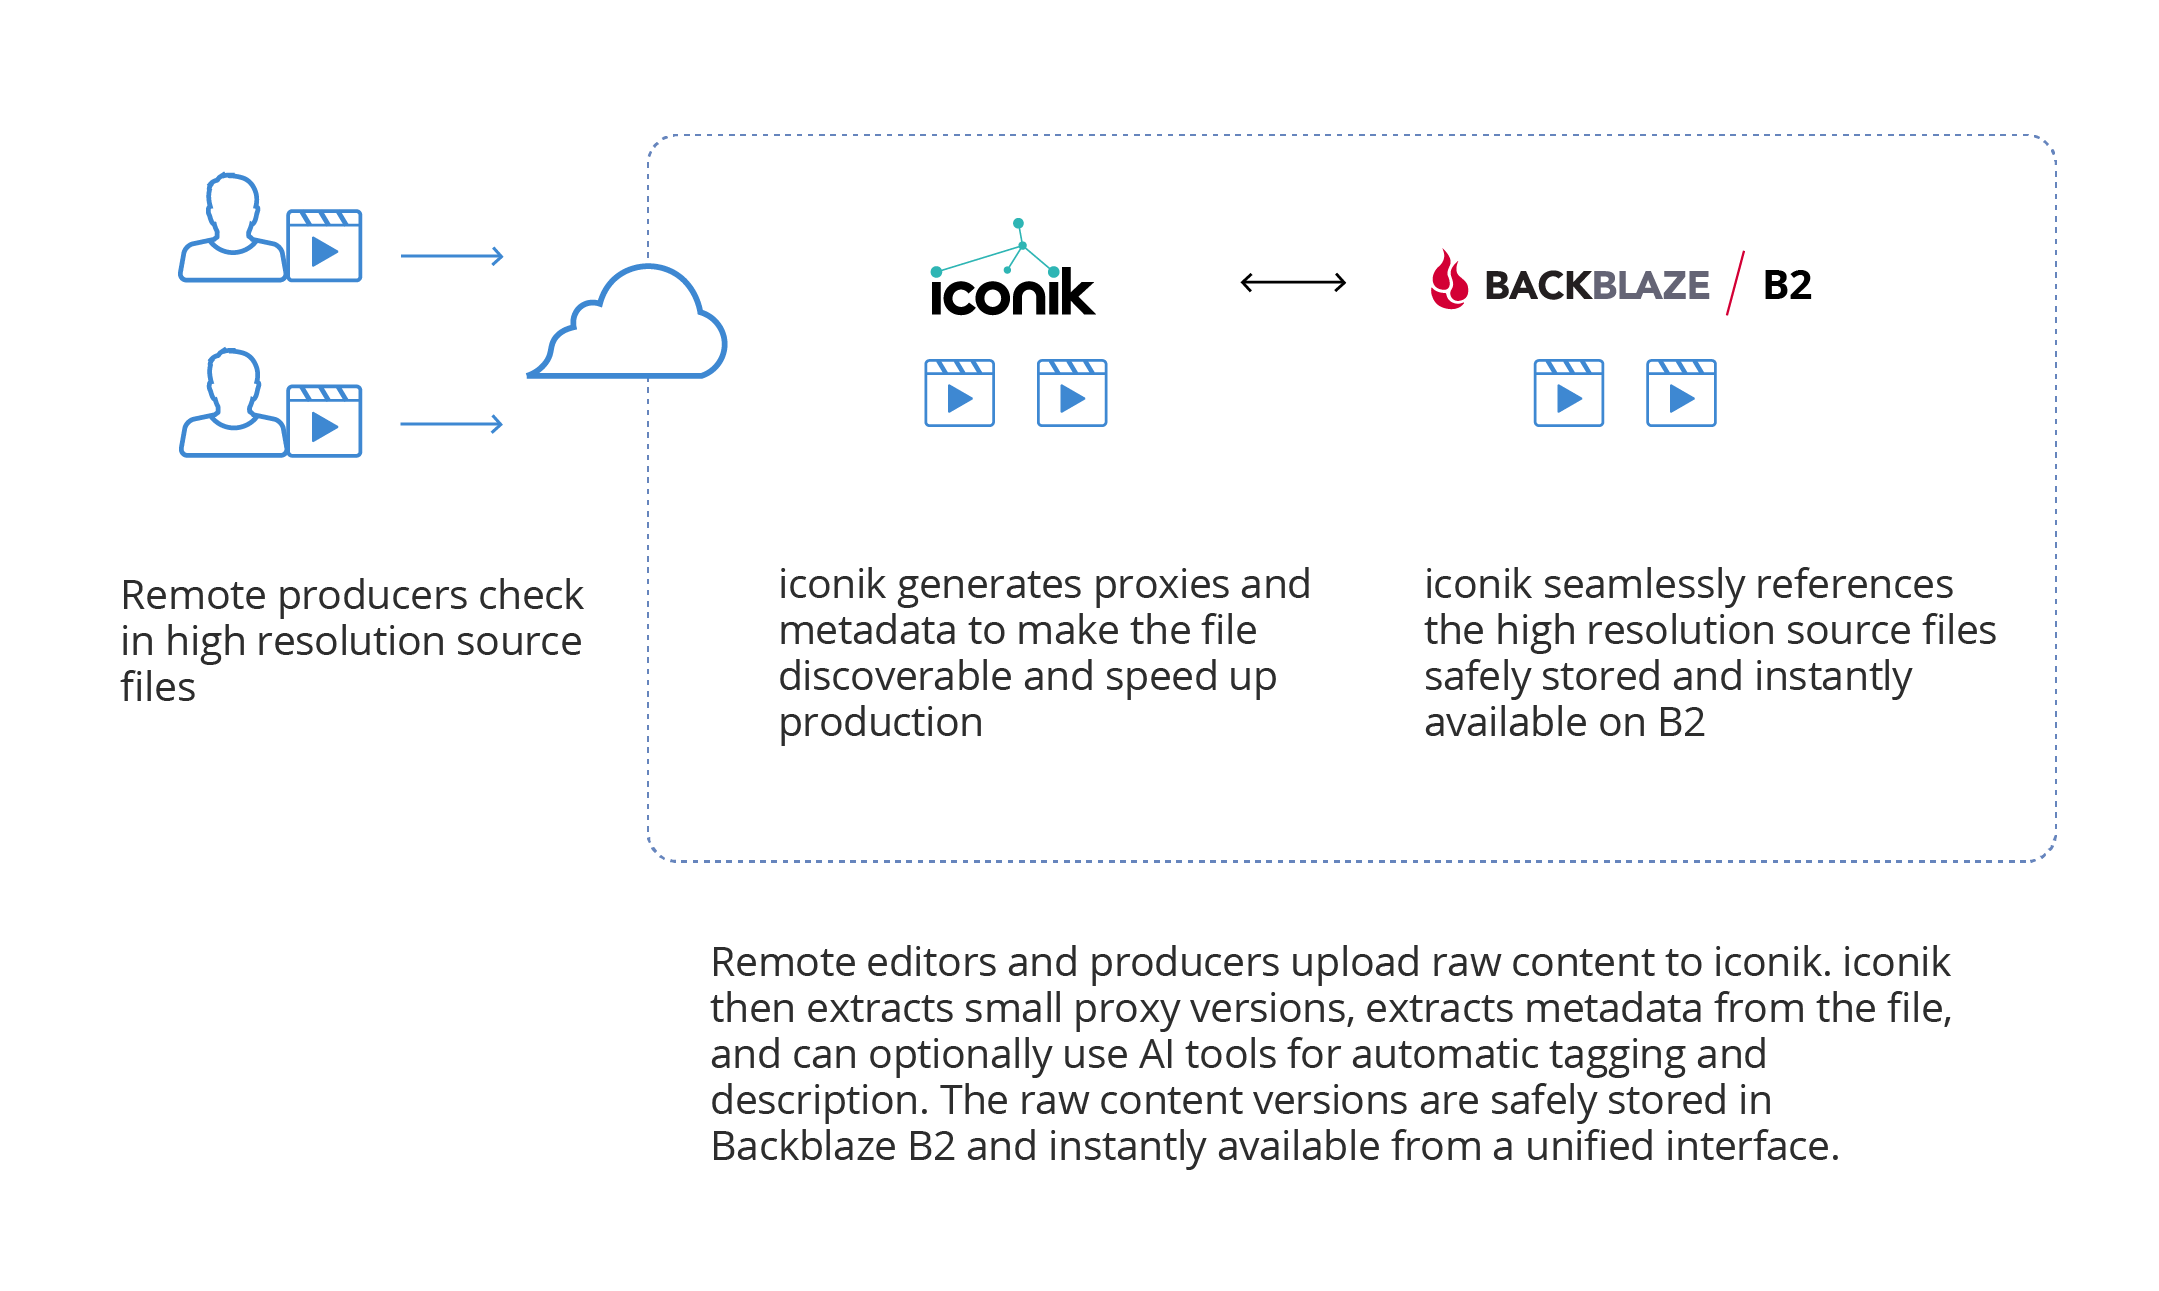 How Everwell uses iconik and Backblaze together